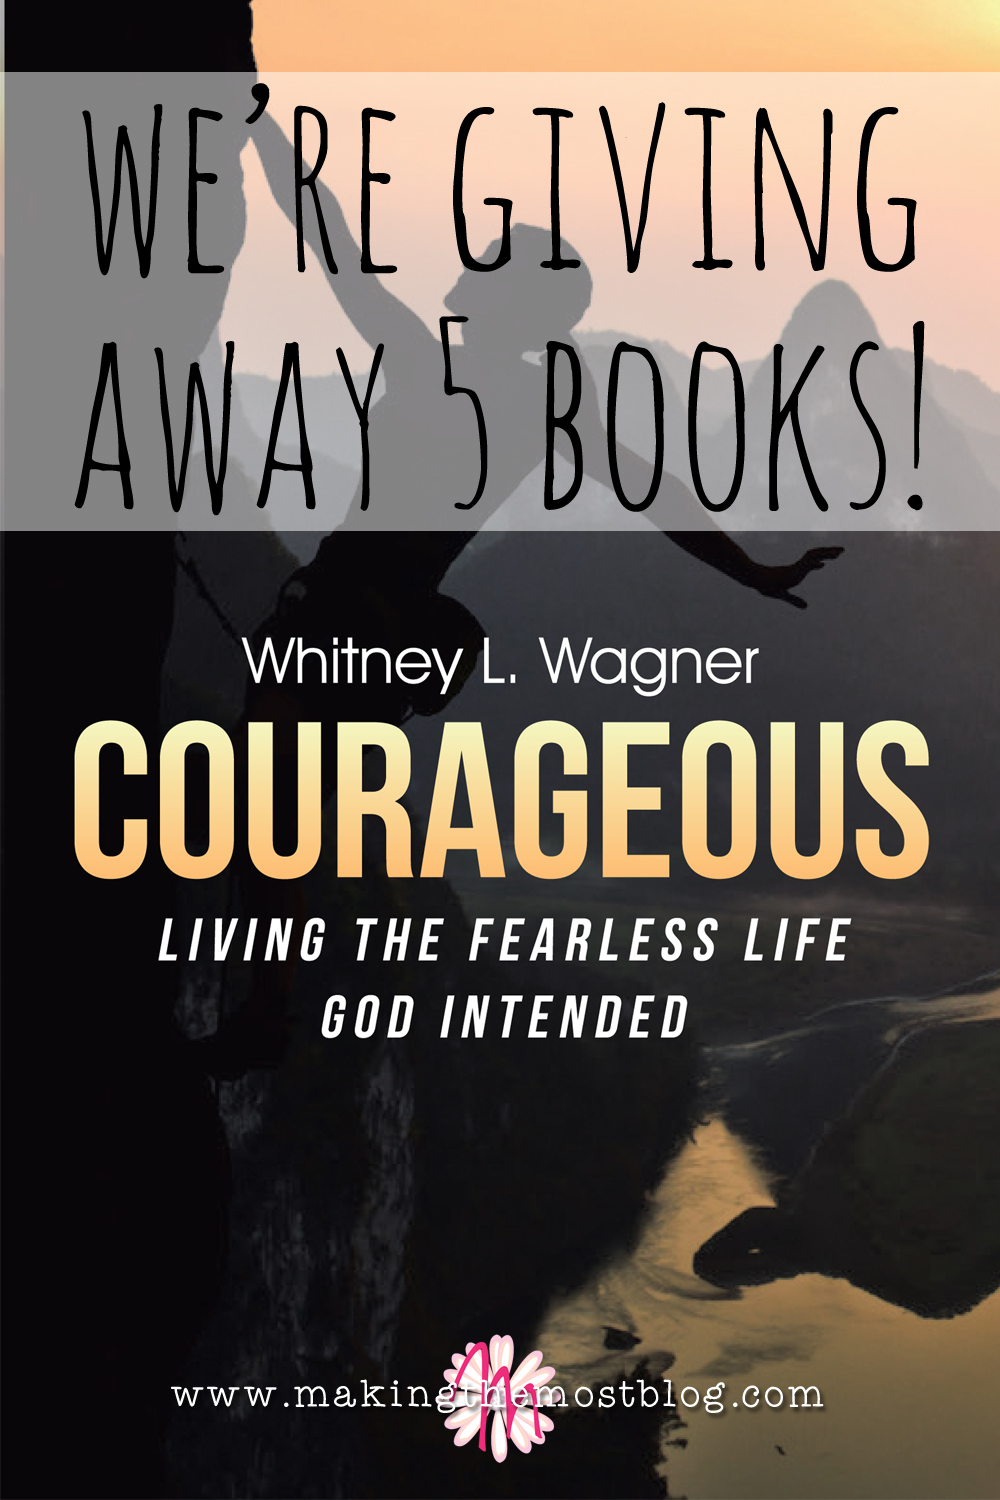 Share The Love {Courageous Giveaway!}